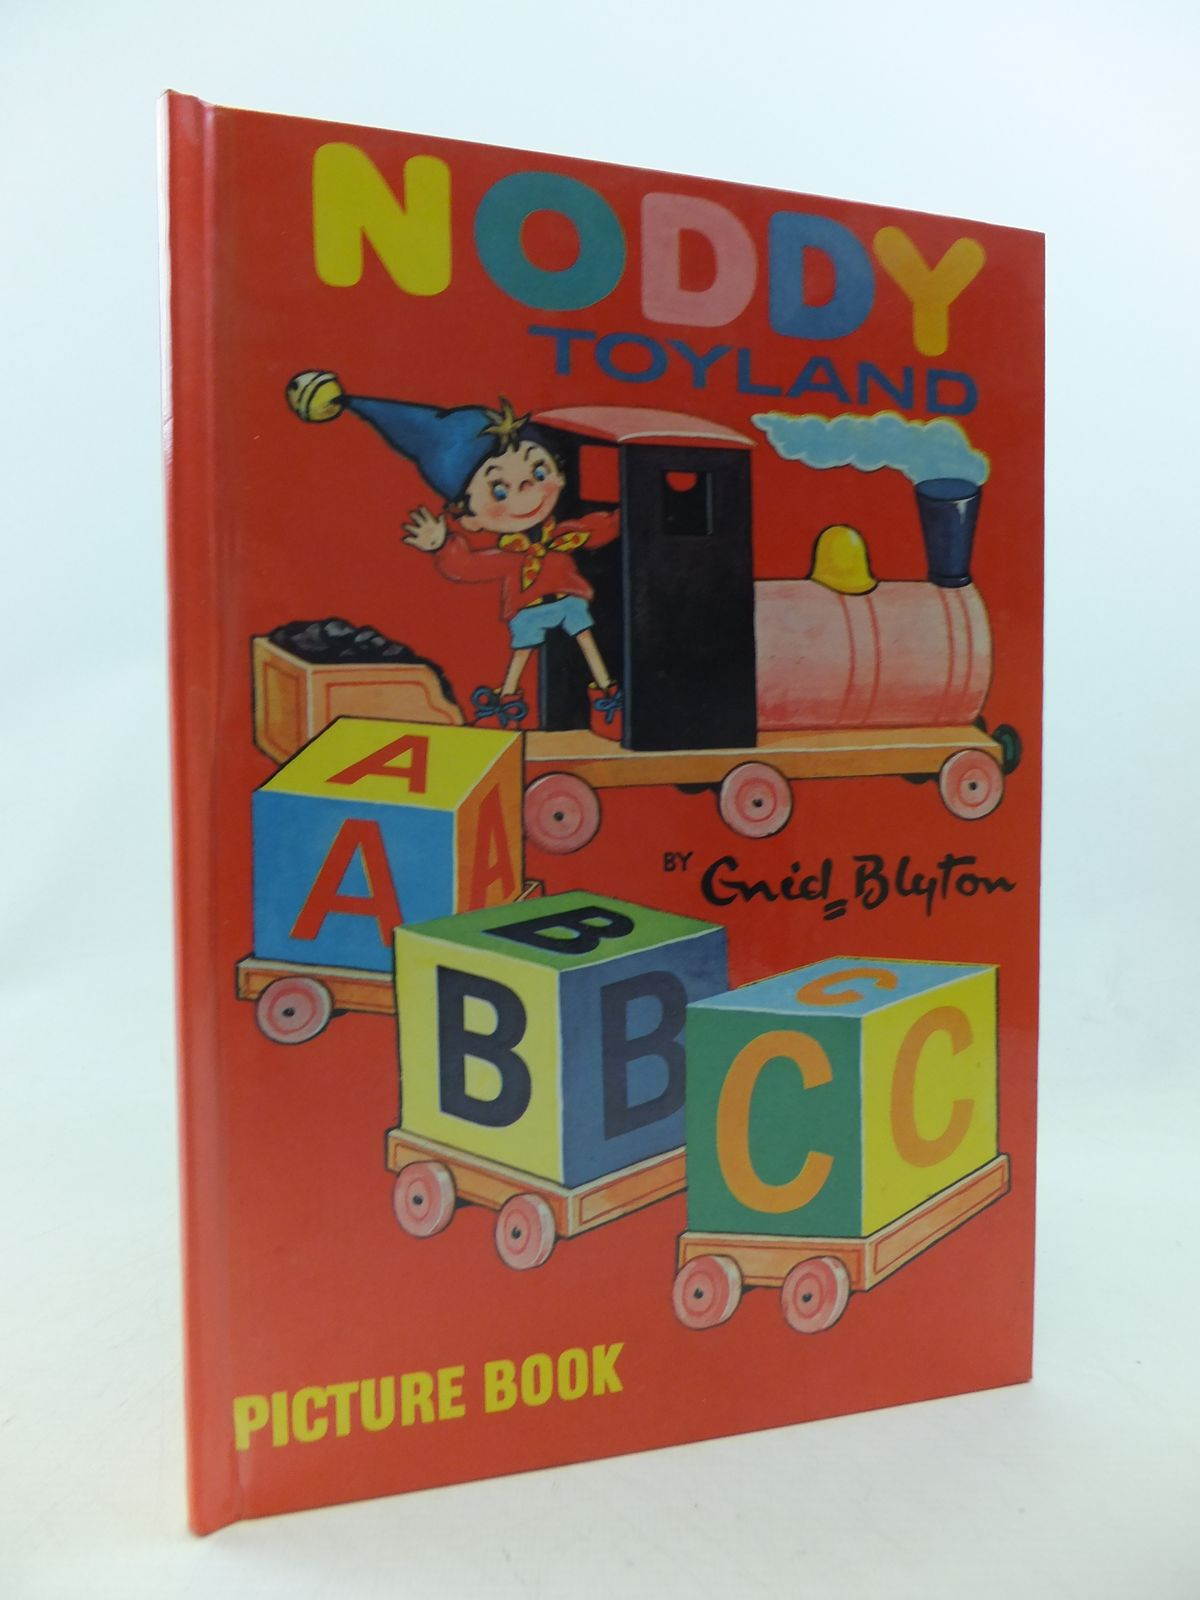 Photo of NODDY TOYLAND ABC PICTURE BOOK written by Blyton, Enid published by Sampson Low, Marston, Dennis Dobson Ltd. (STOCK CODE: 2114460)  for sale by Stella & Rose's Books